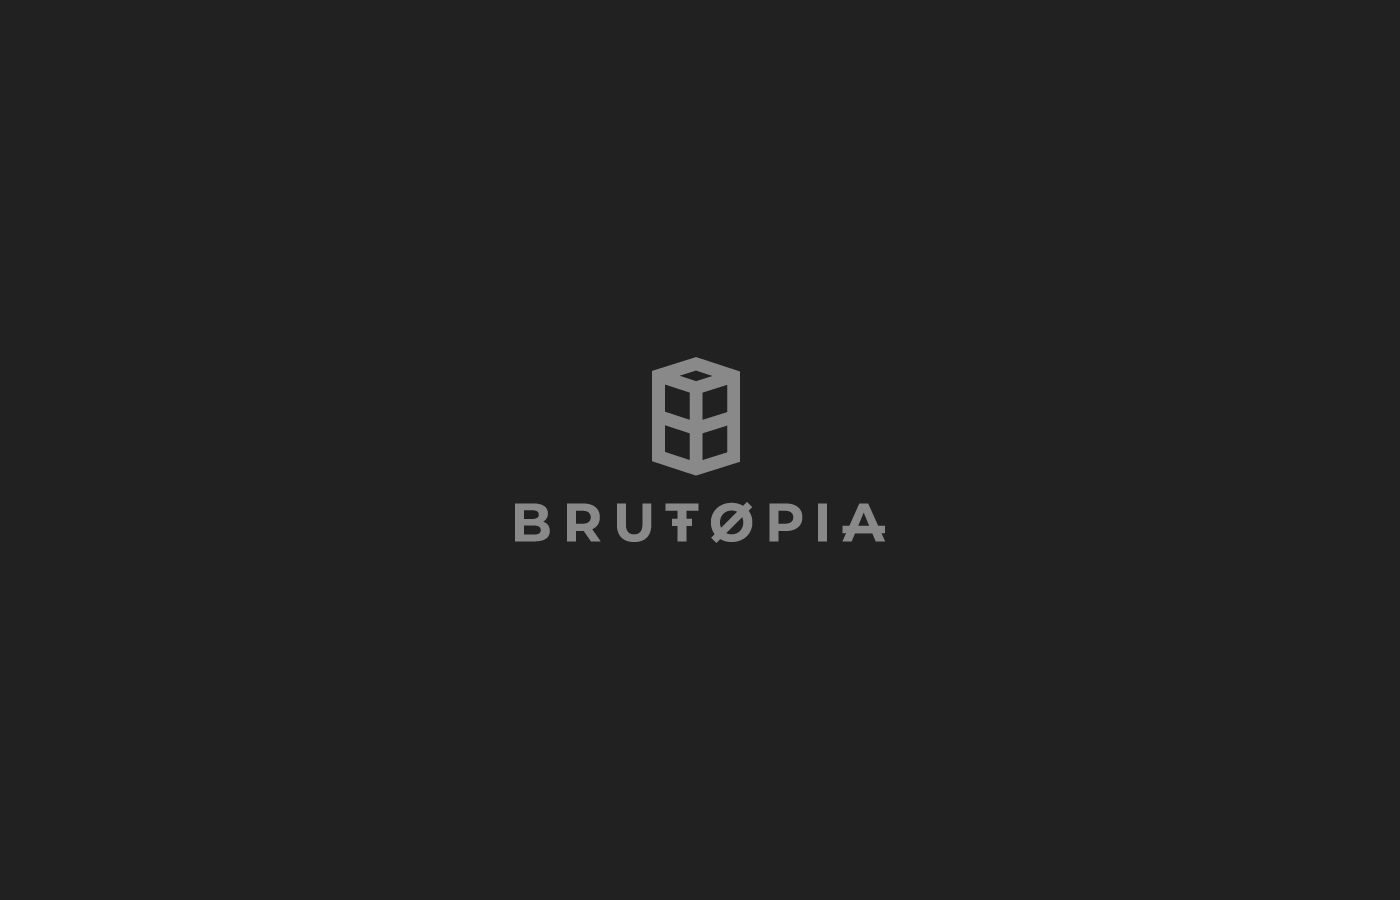 BRUTOPIA – Branding + Photography + Product Design